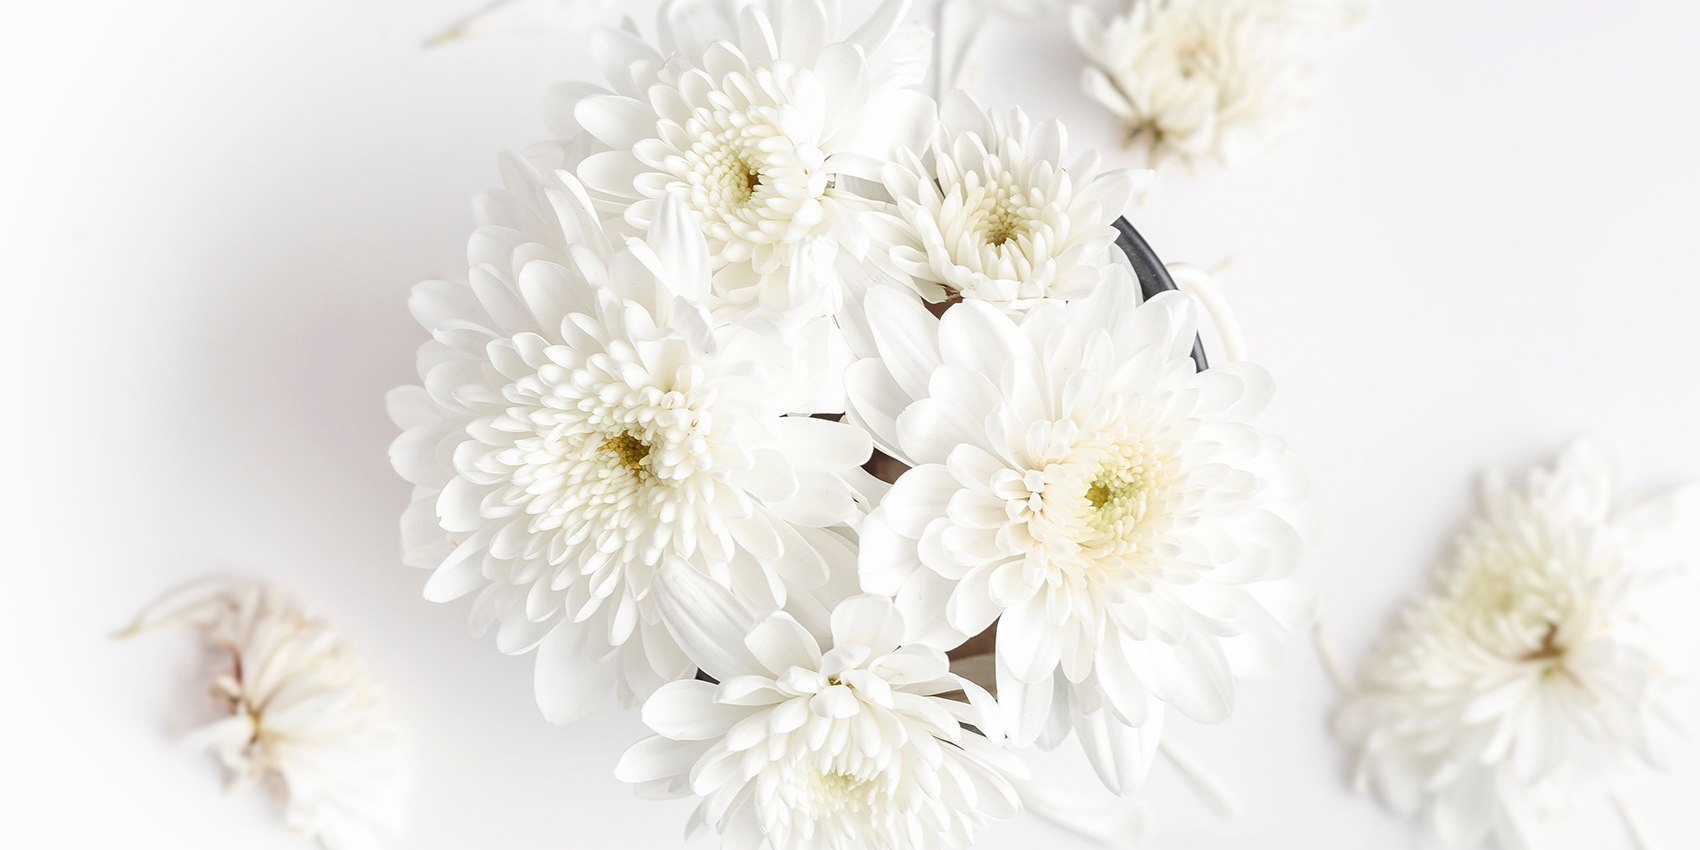 inbloom-white-flowers_01